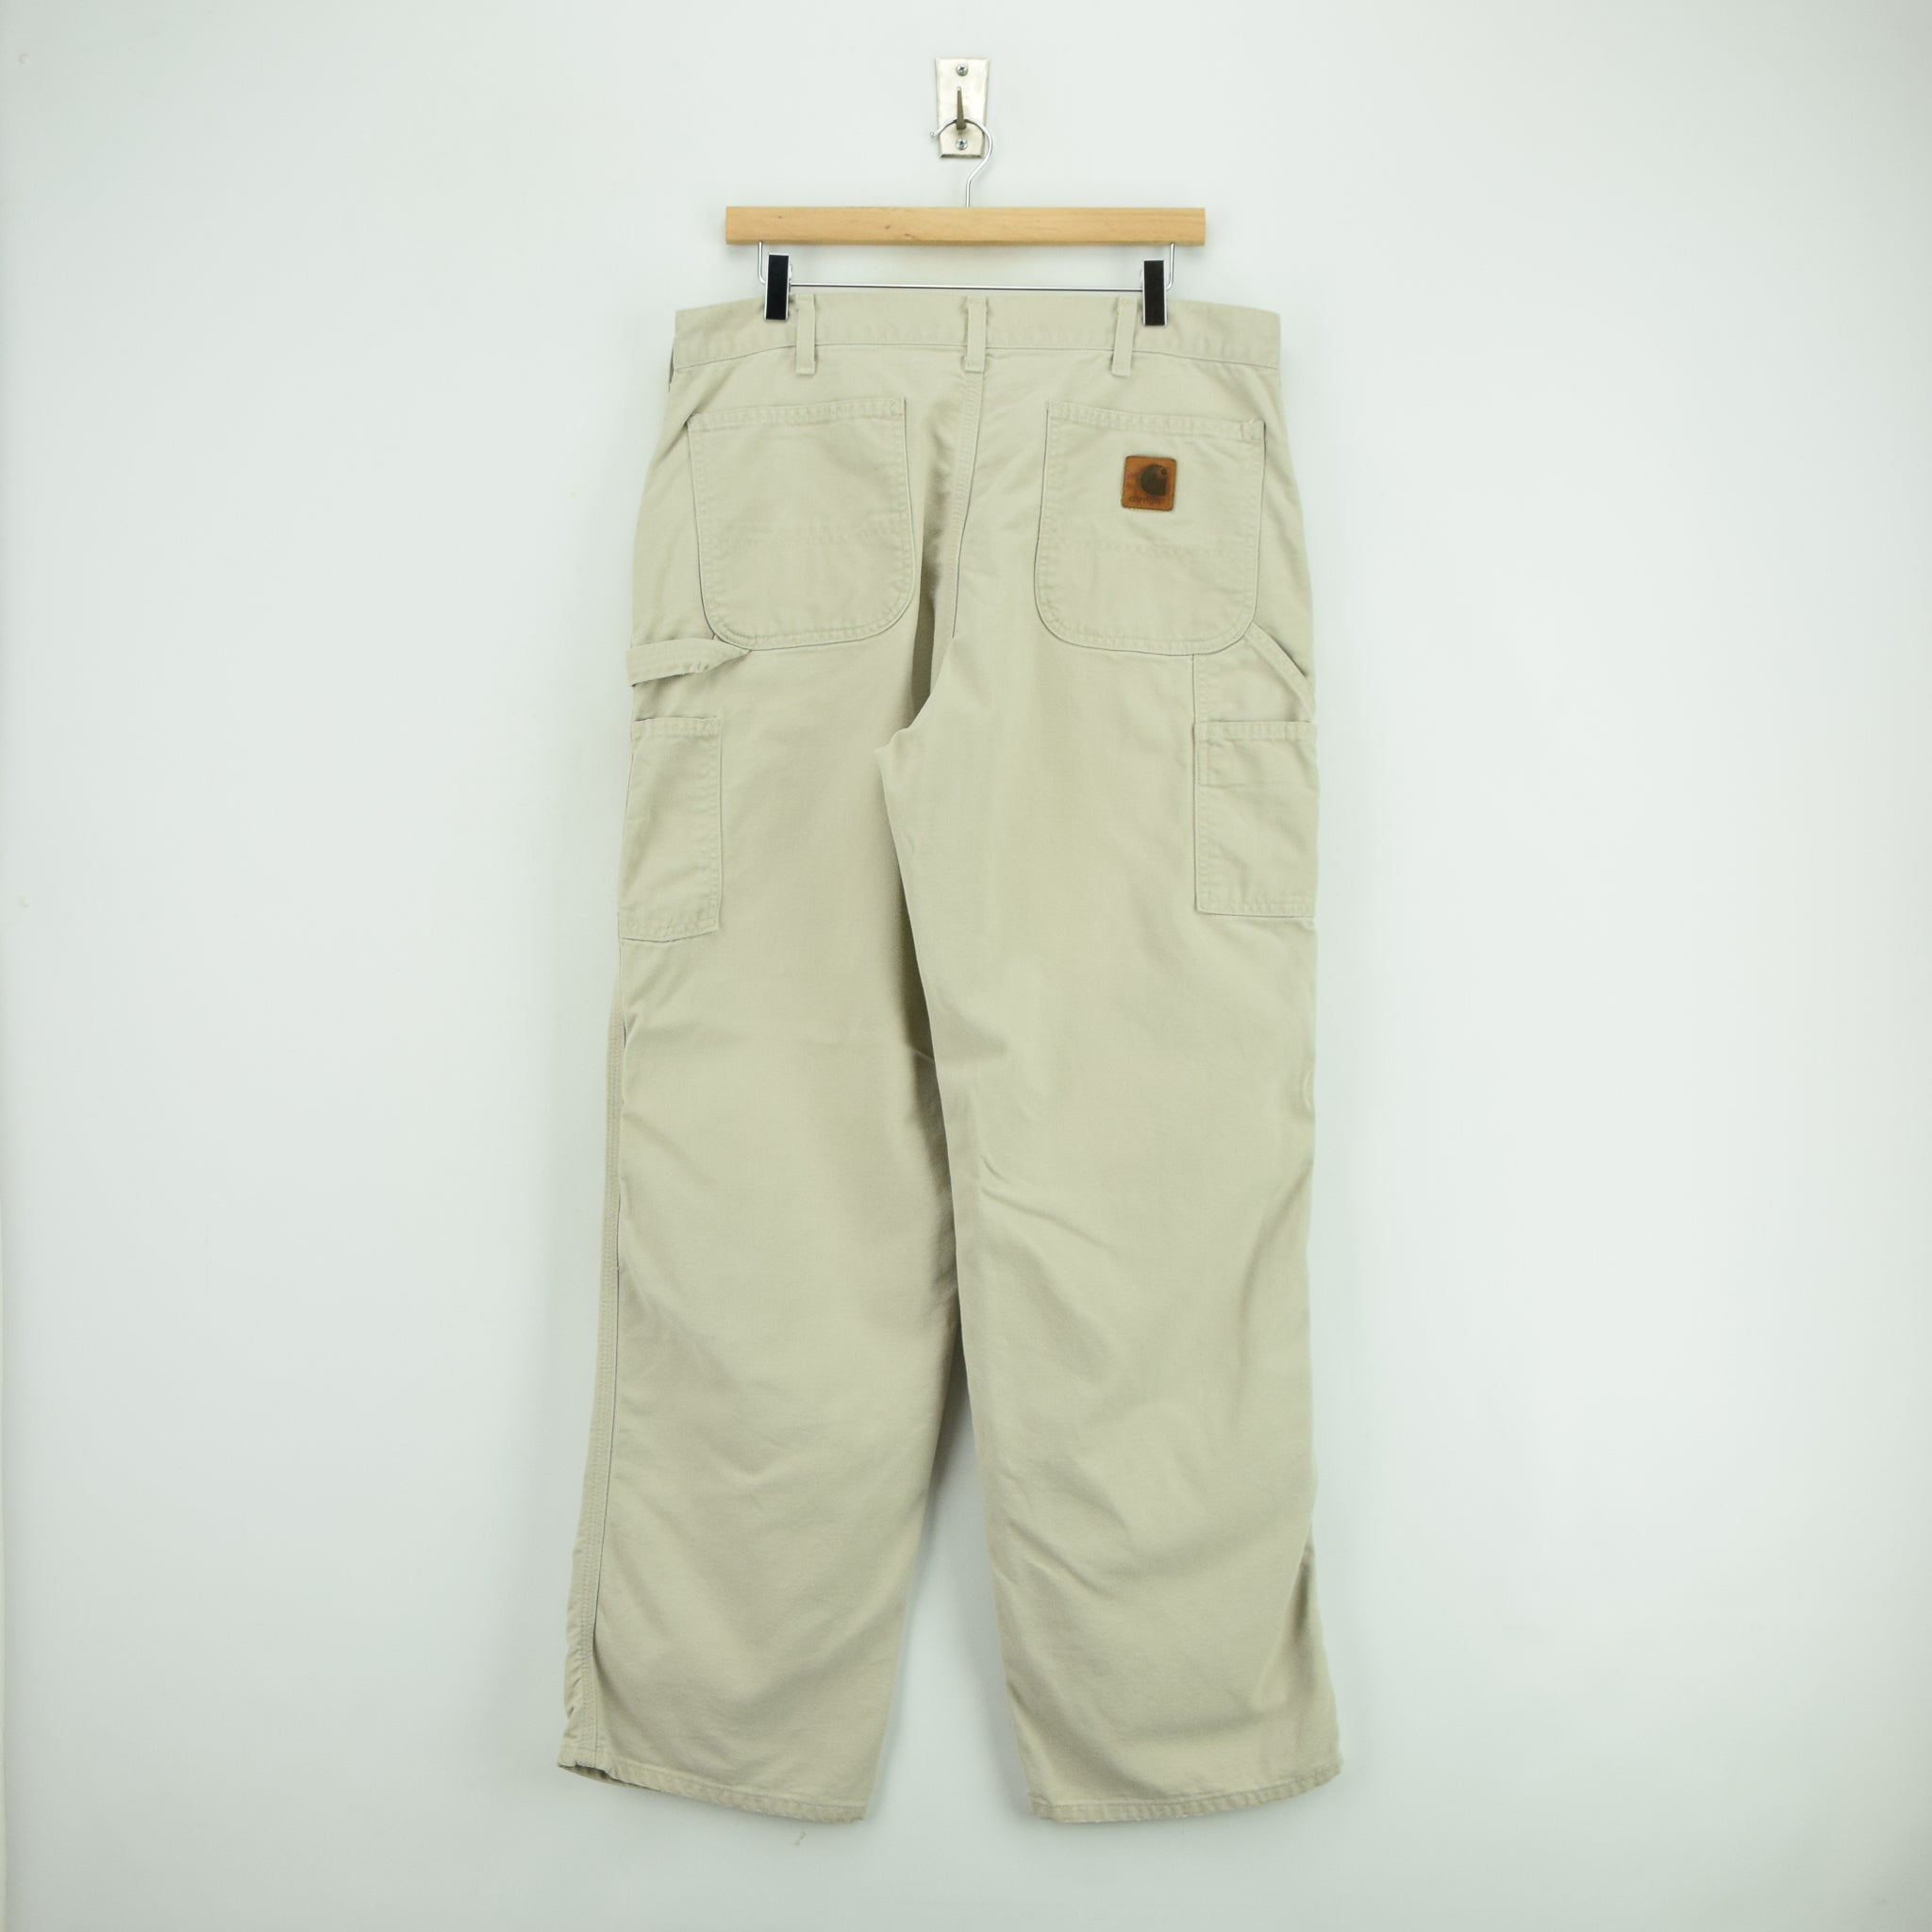 Vintage Carhartt Stone Carpenter Duck Canvas Utility Work Pant 34 W 32 L back